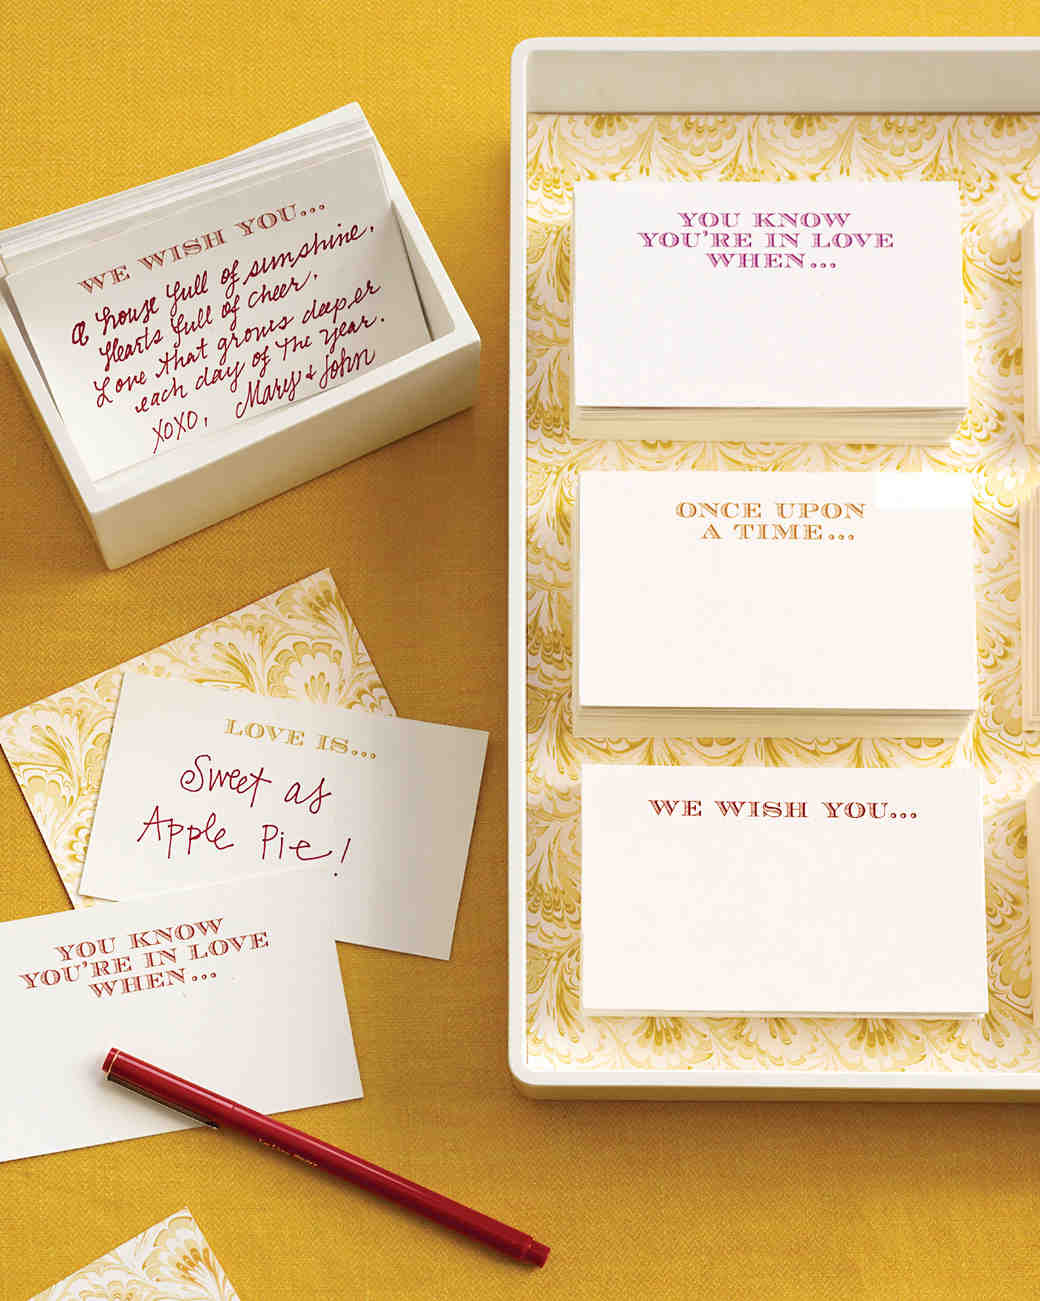 bridal-shower-games--finish-that-thought-guest-book-f09-0315.jpg